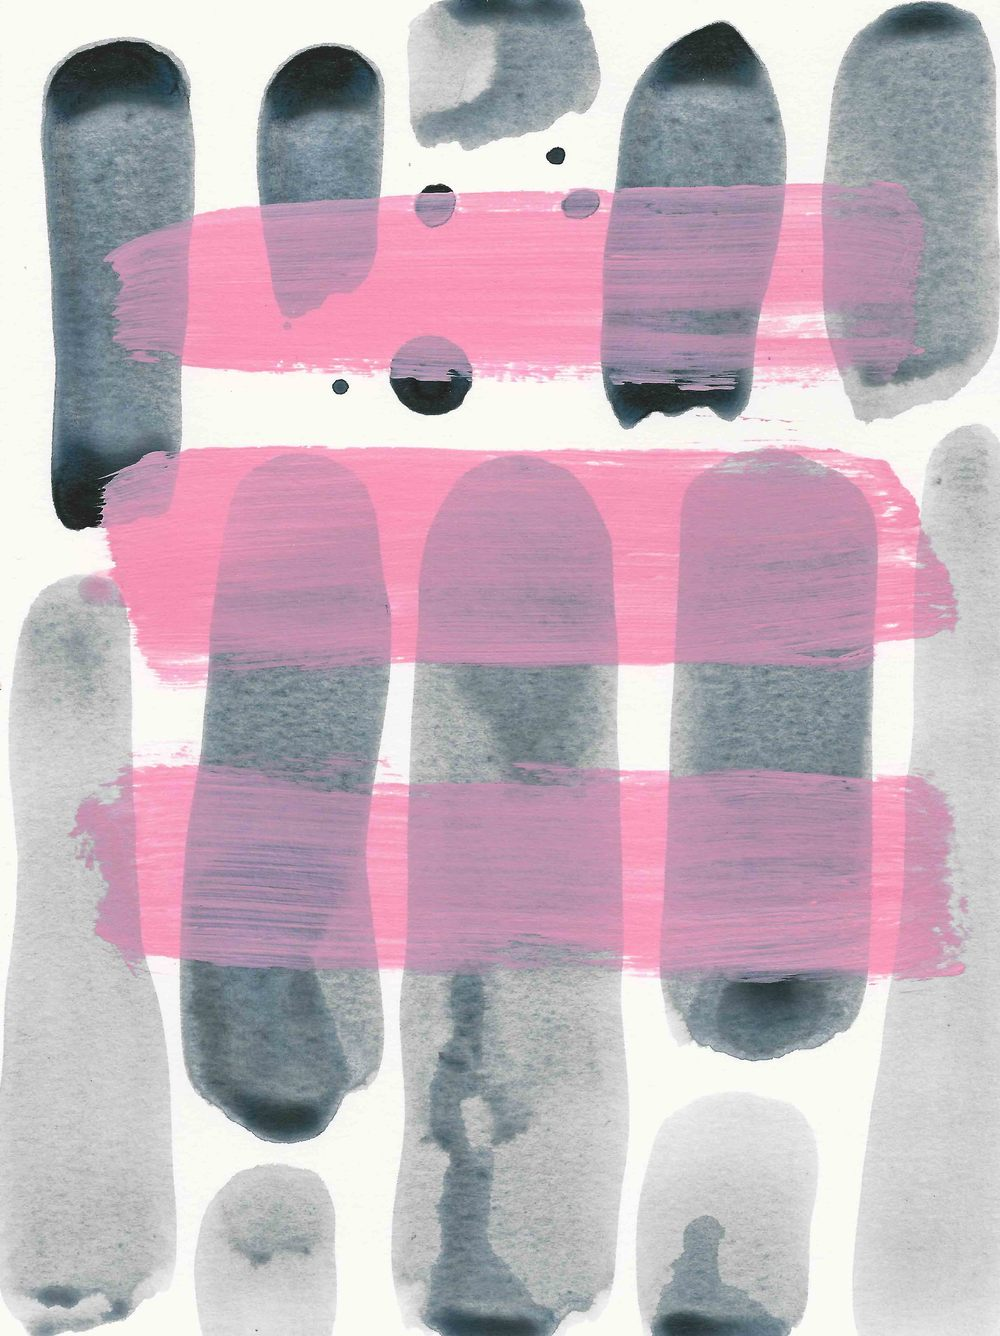 stones and pink 6x8 paper.jpg